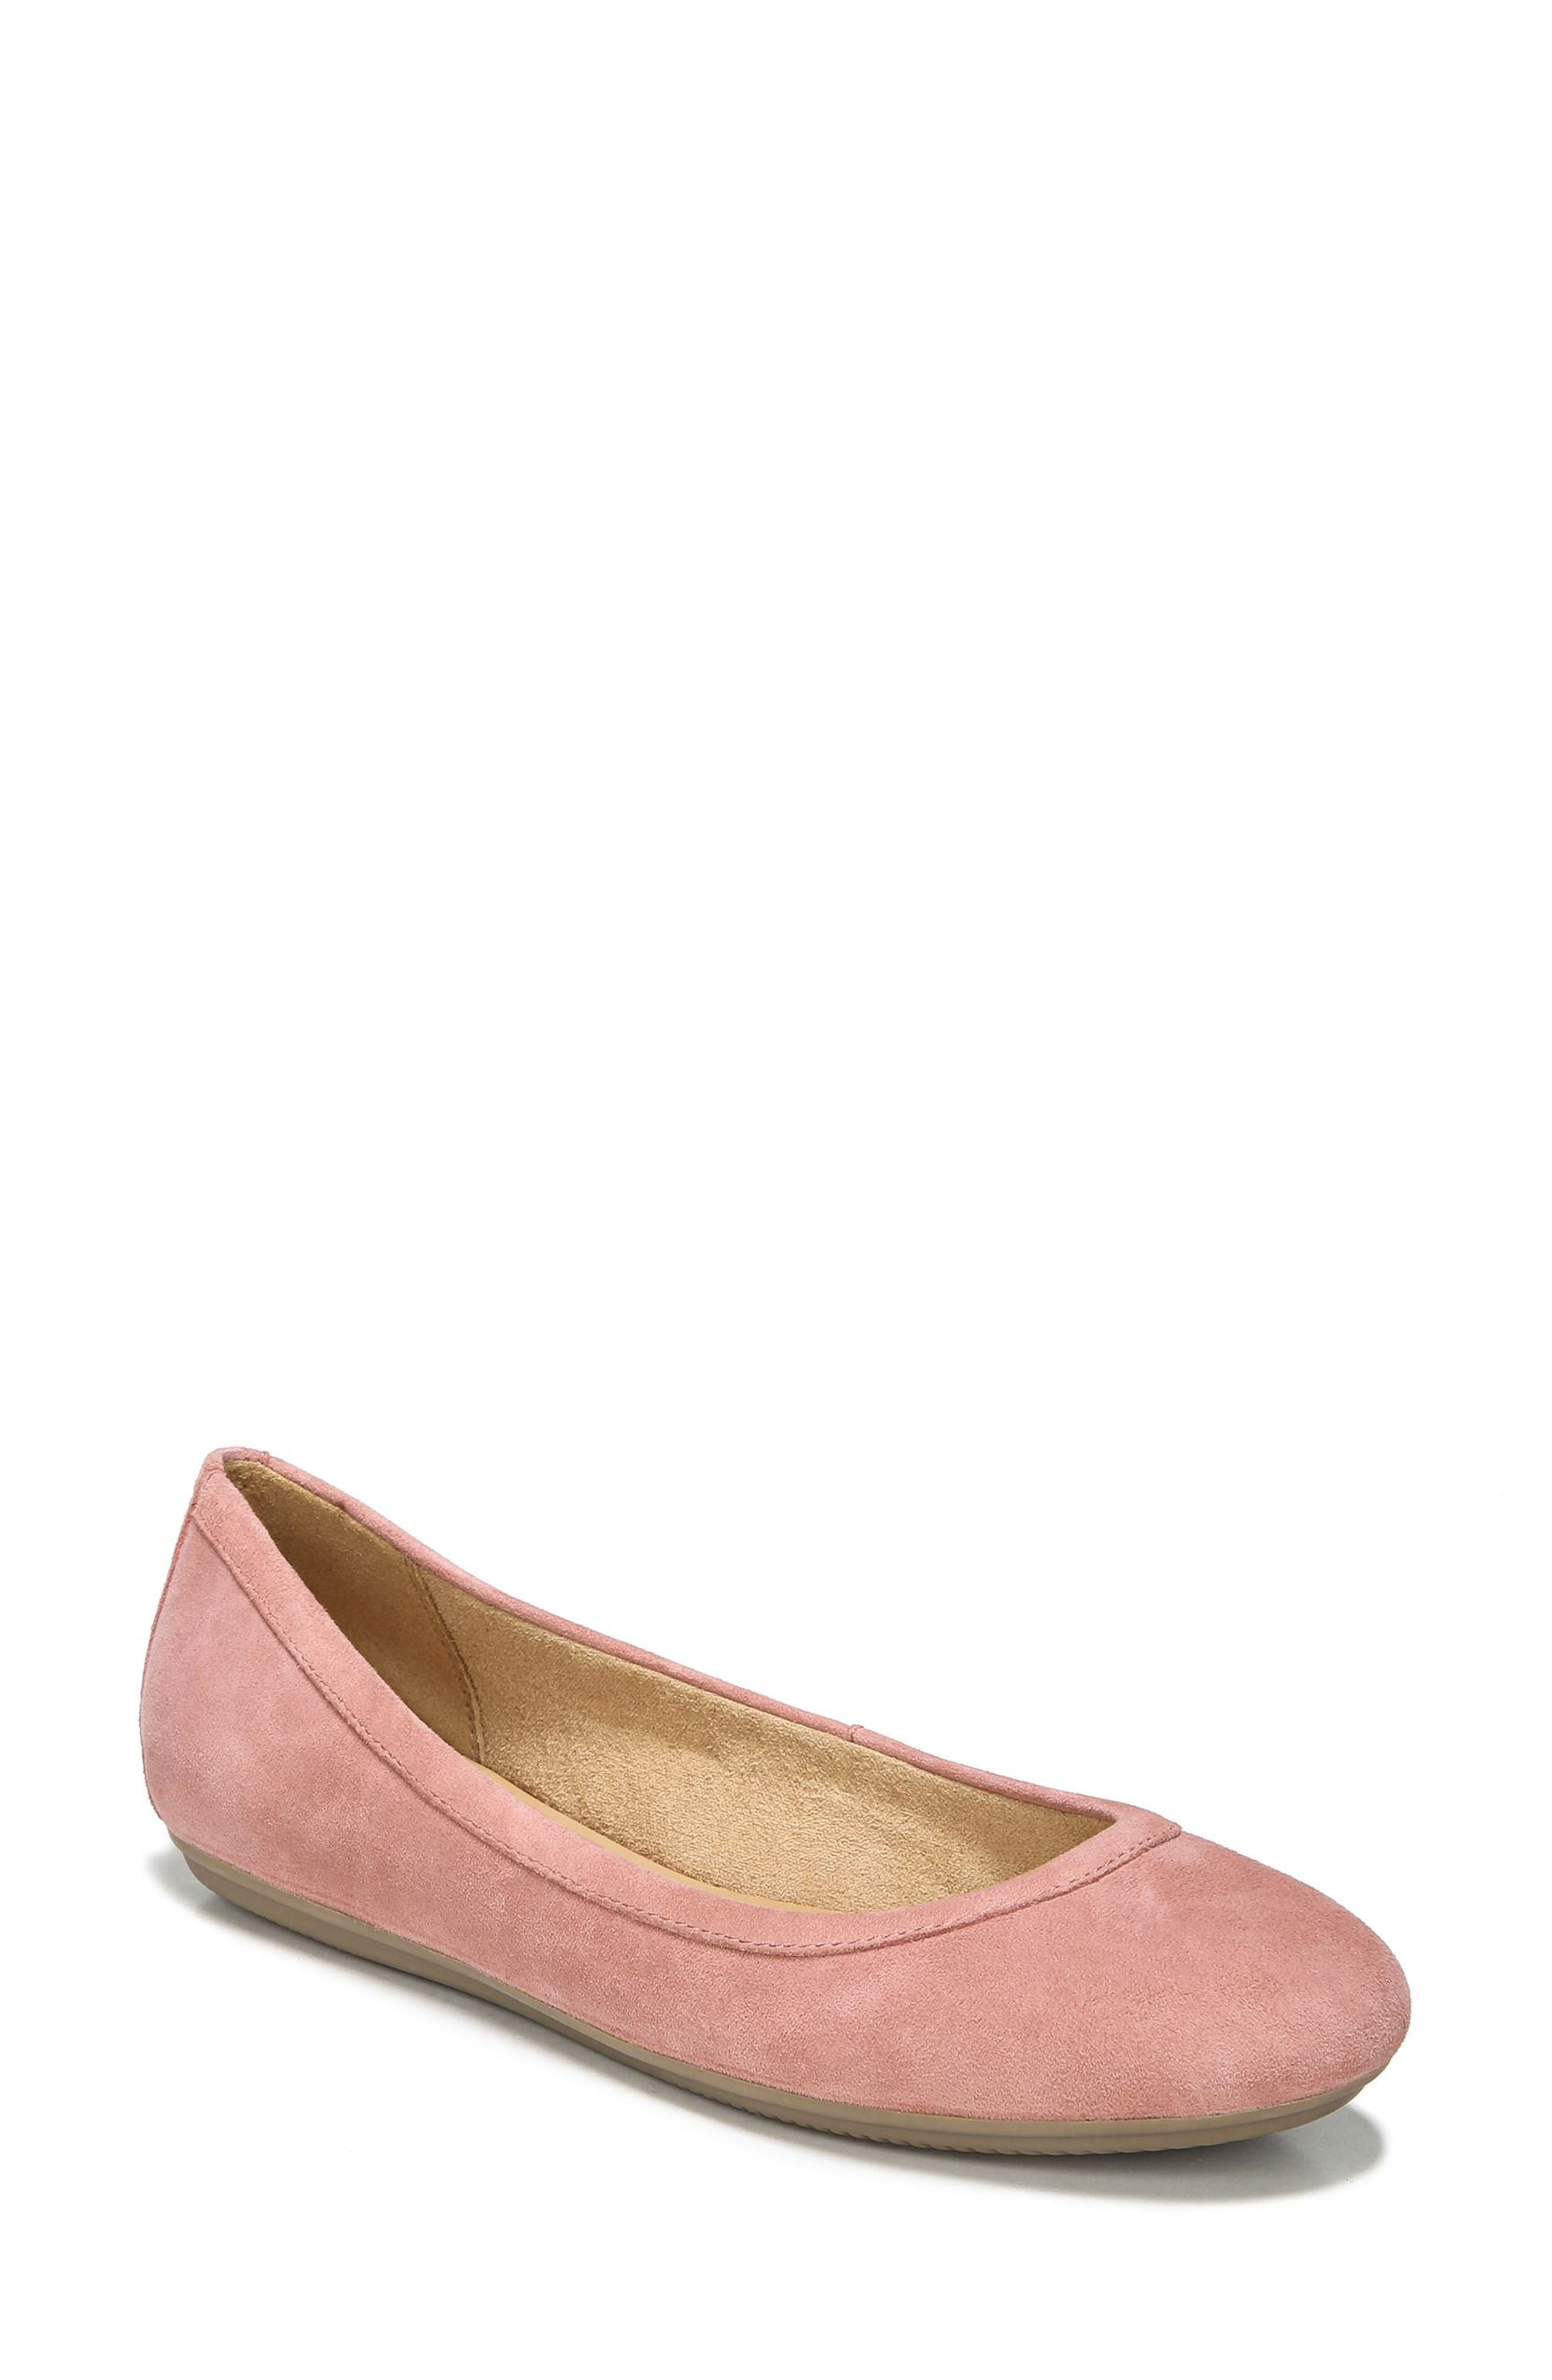 NATURALIZER Brittany Ballet Flat, Main, color, PEONY PINK SUEDE